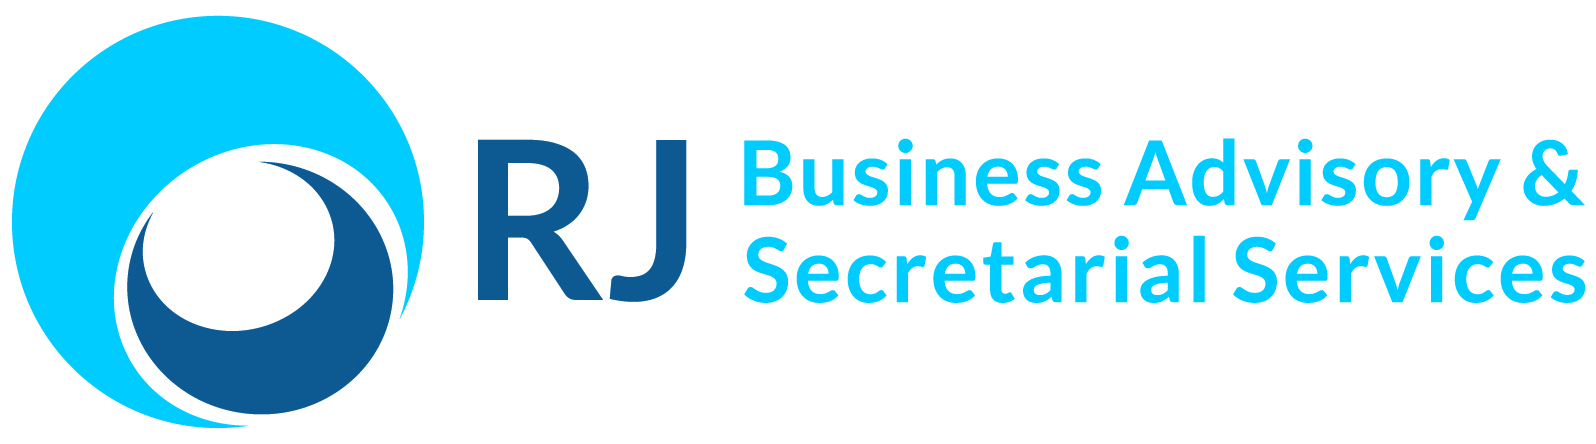 RJ Business Advisory and Secretarial Services